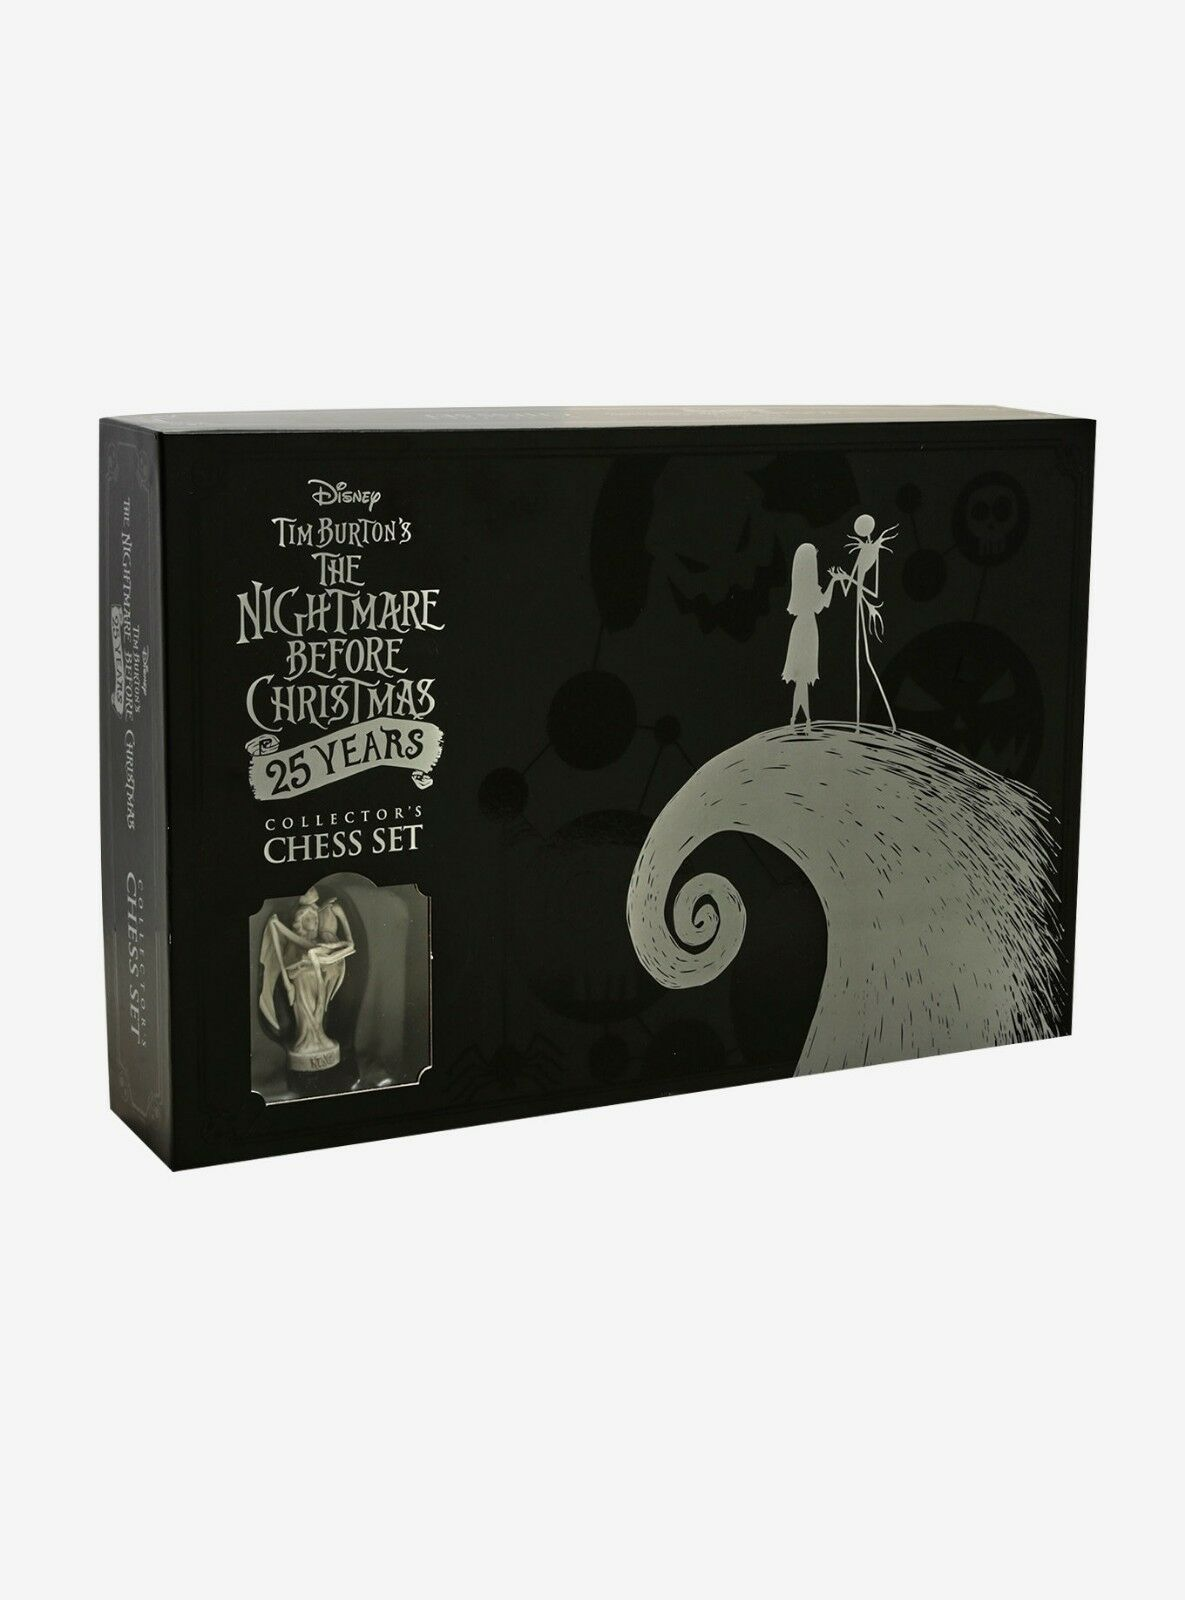 New Sealed Nightmare Before Christmas 25th Anniversary Chess Set Board Game